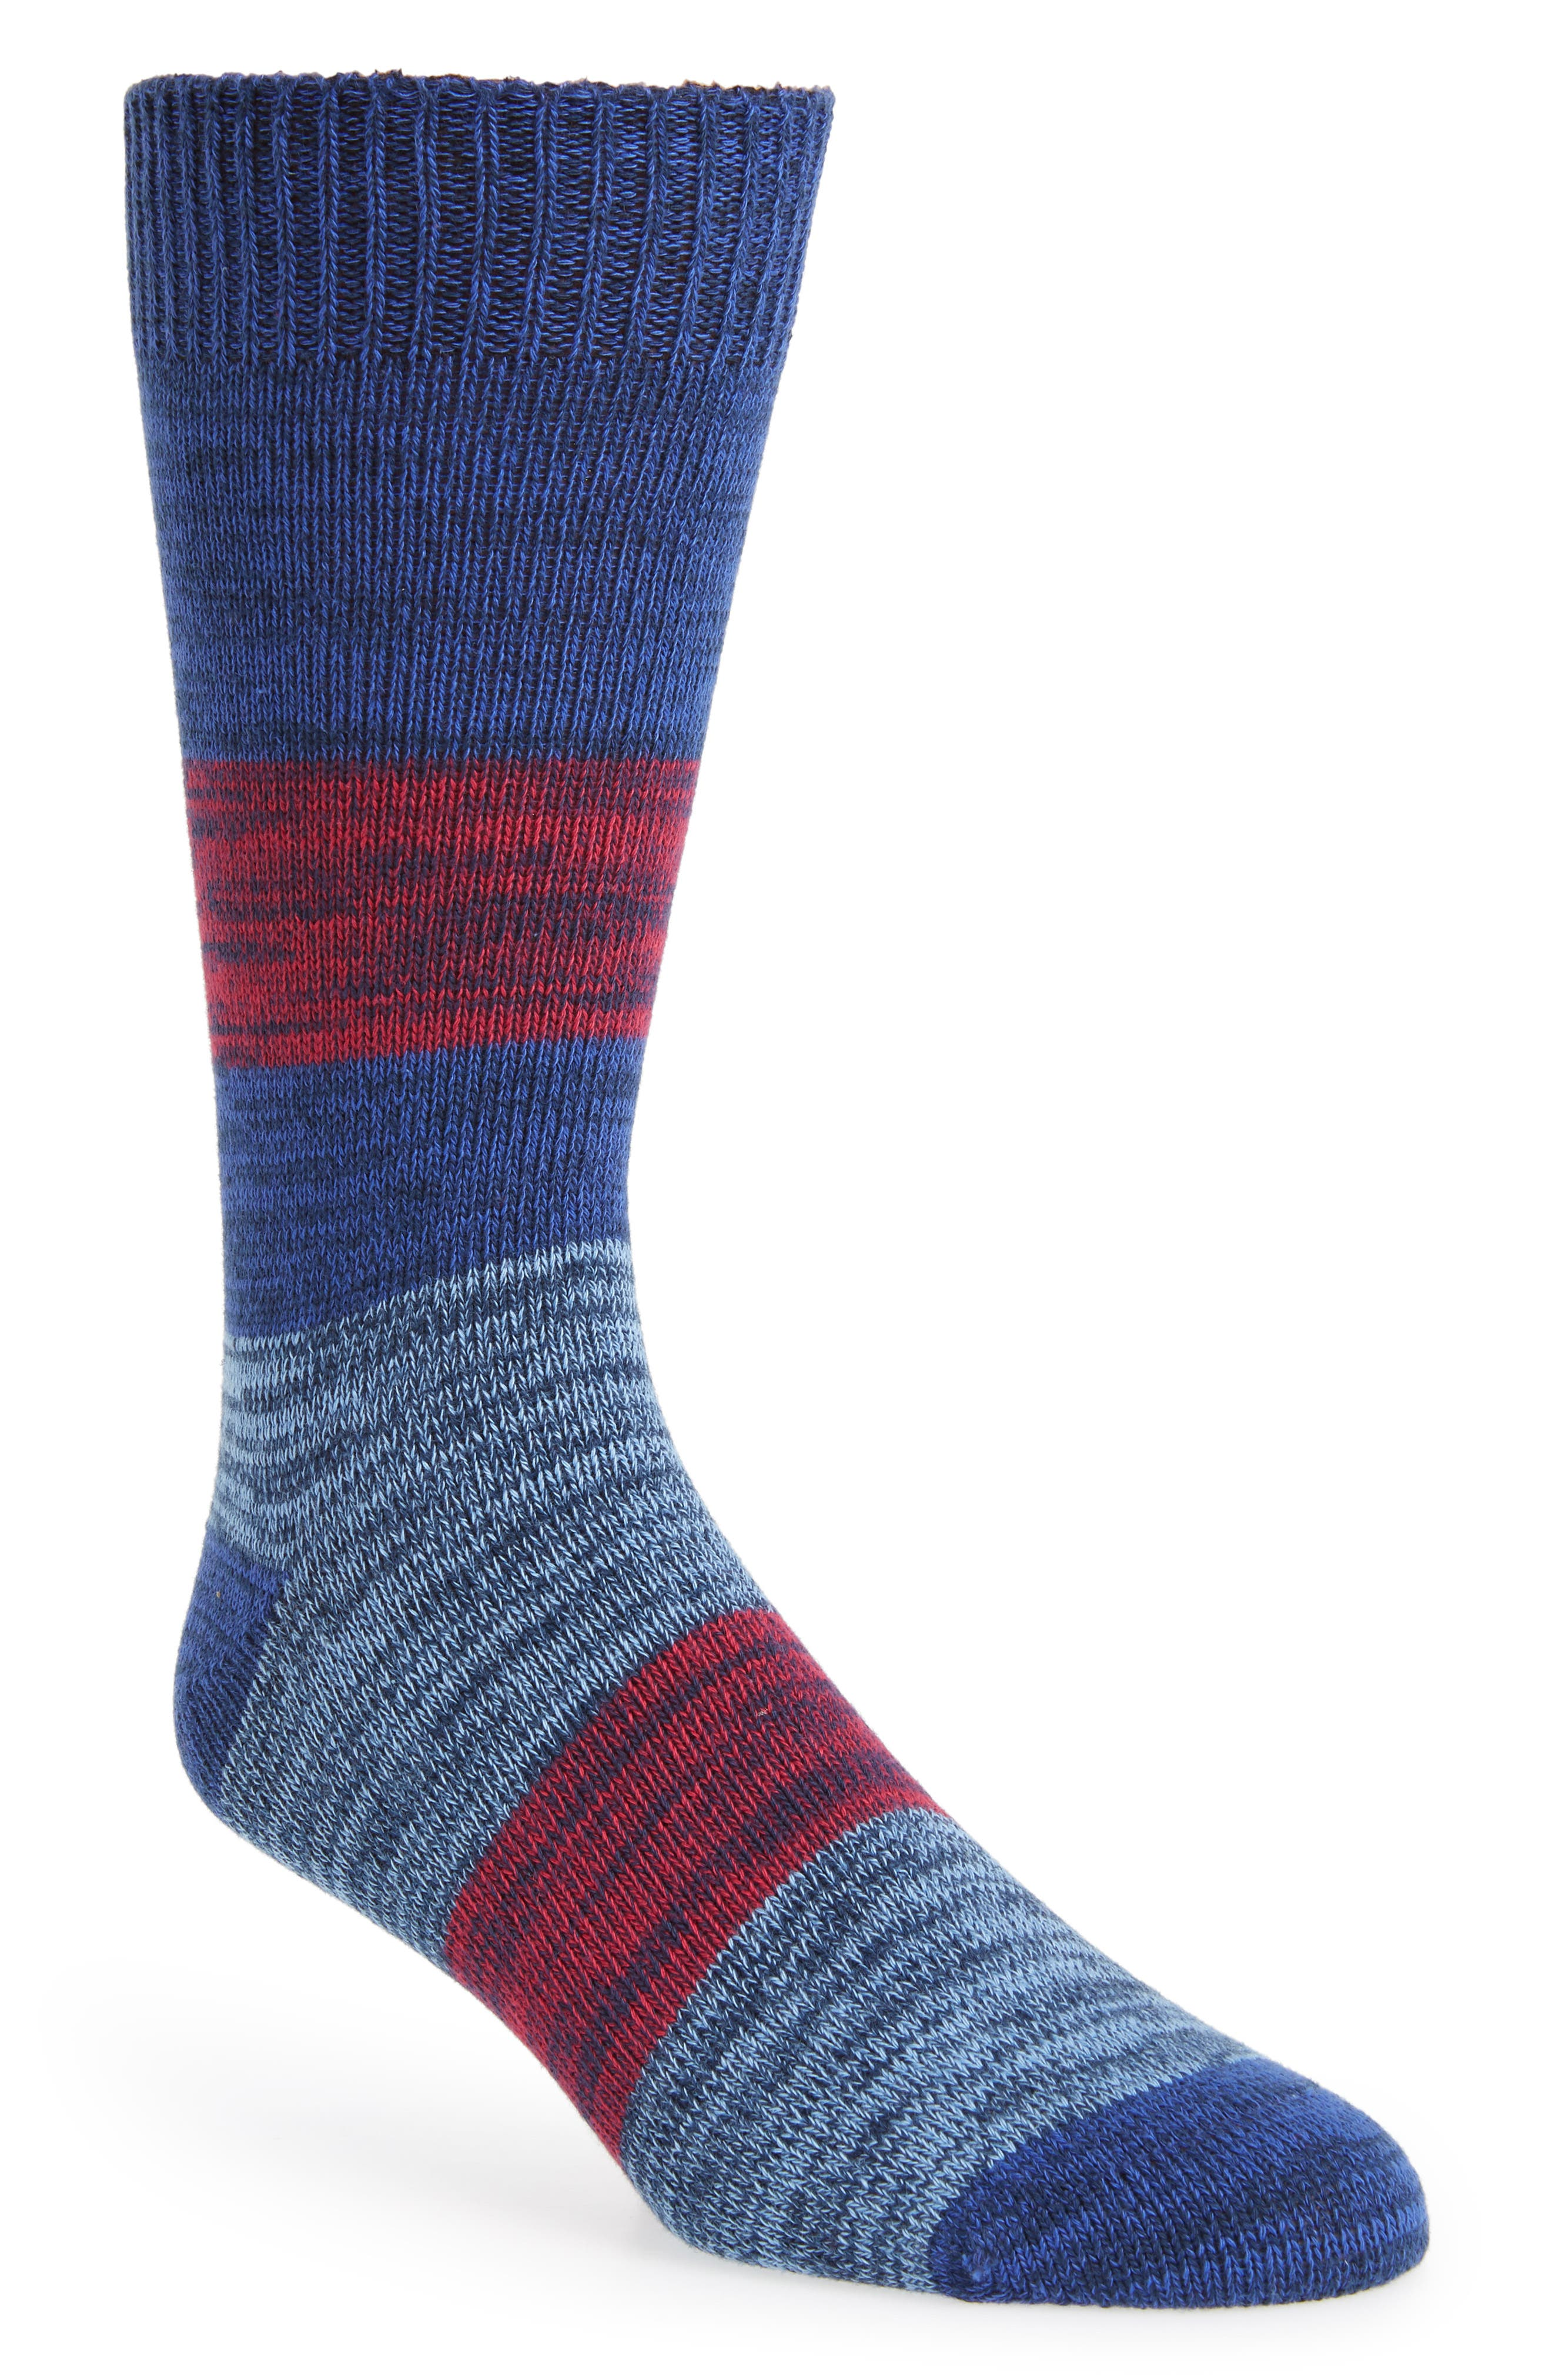 Seere Stripe Socks,                             Main thumbnail 1, color,                             BRIGHT BLUE